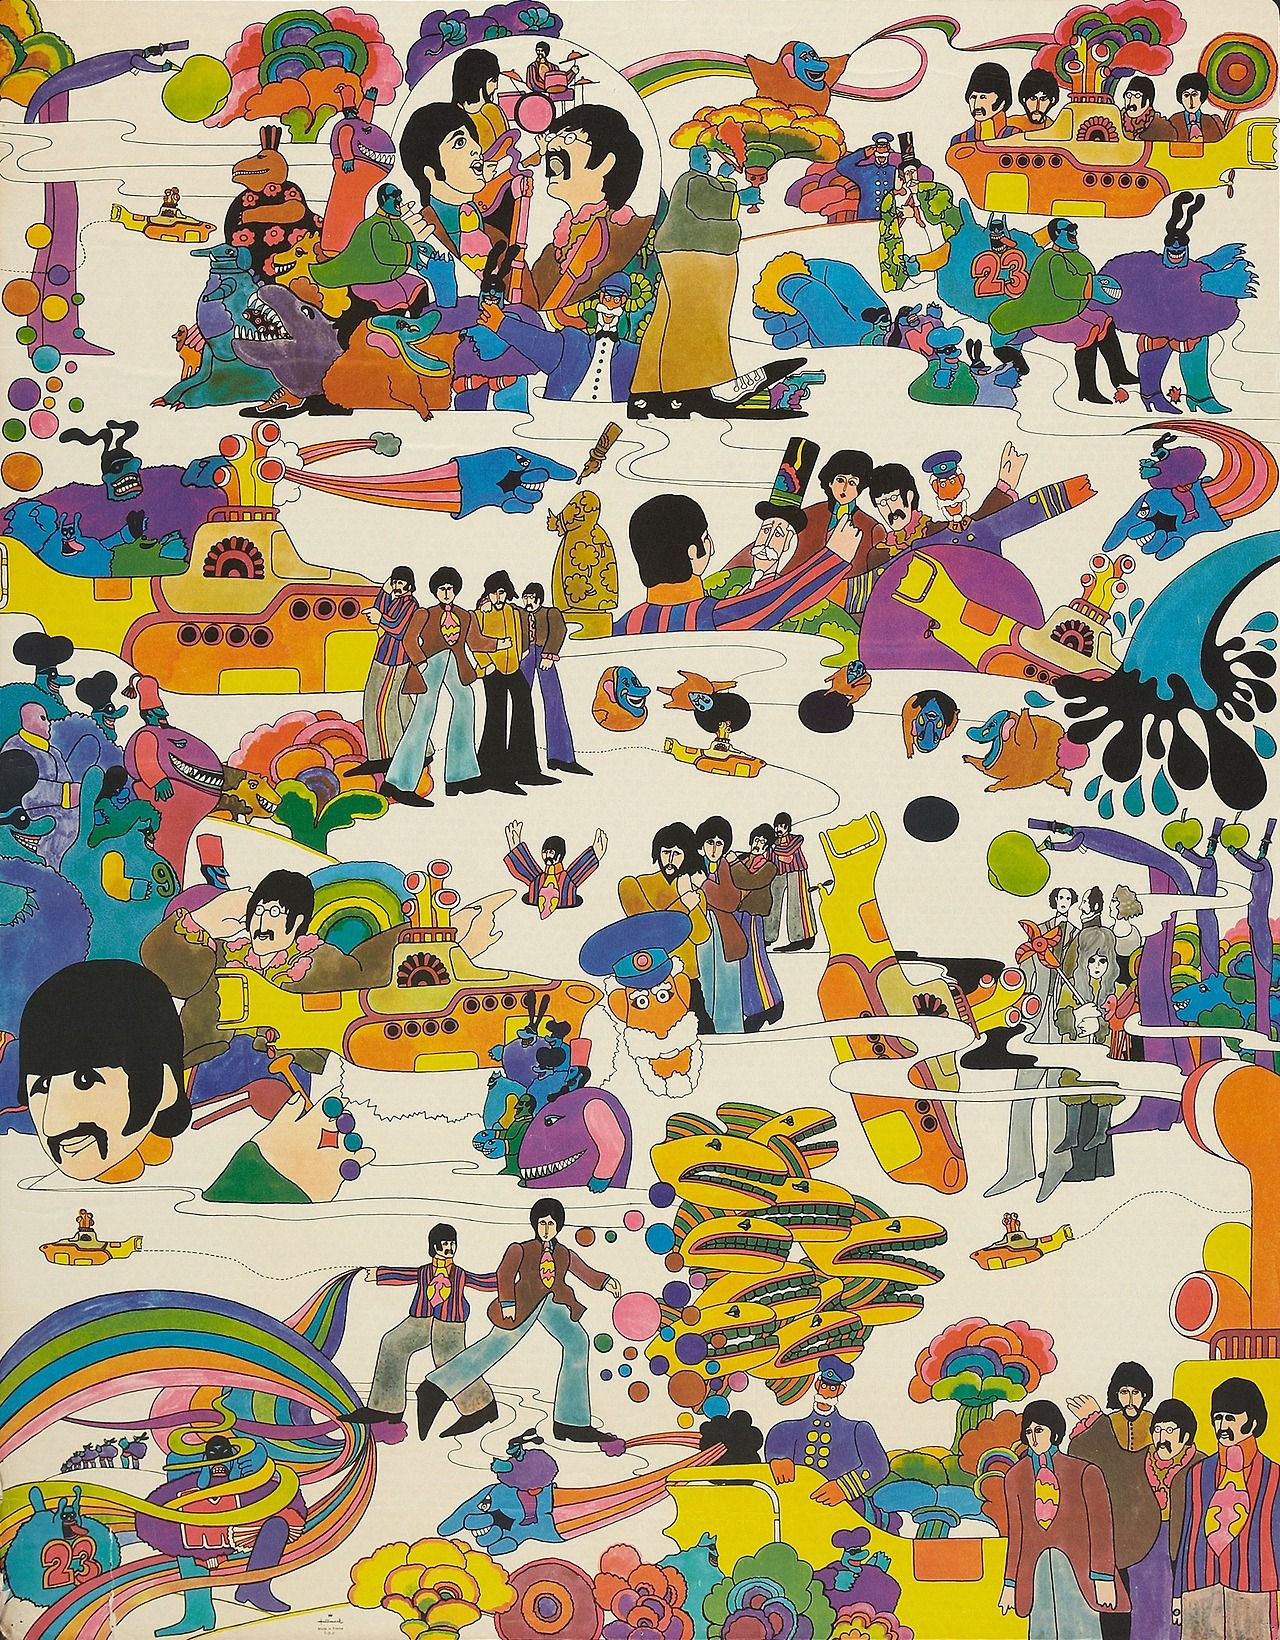 Обои The beatles, sgt. peppers lonely hearts club band, yellow submarine. Музыка foto 15